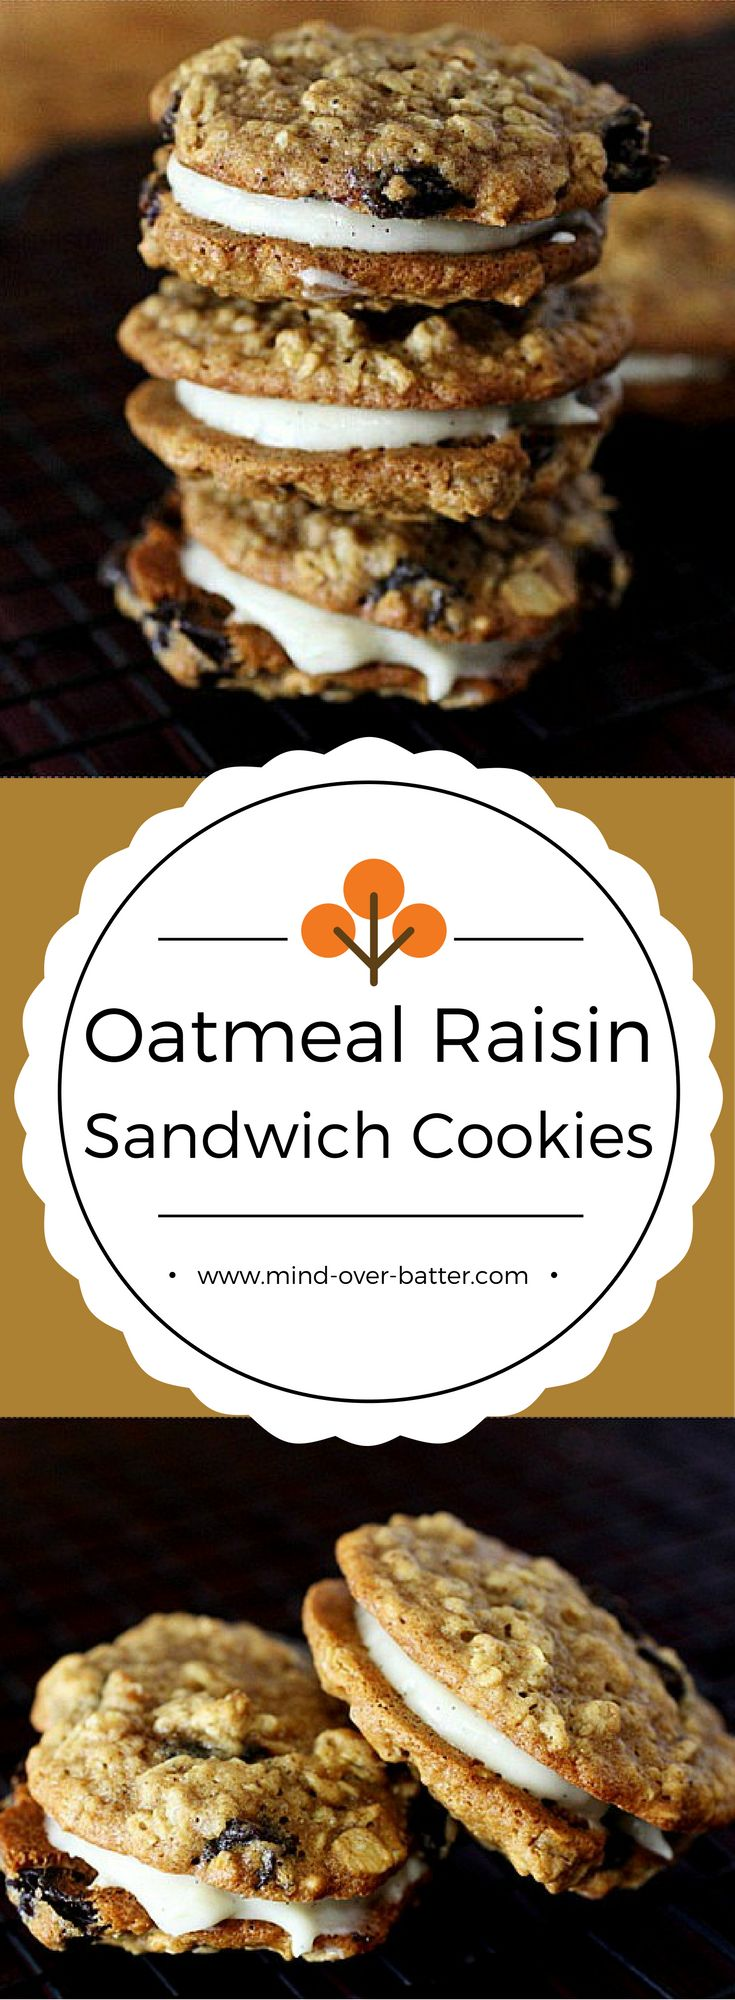 These Oatmeal Raisin Sandwich cookies are EVERYTHING!!! Two soft-baked oatmeal cookies are mixed with plump raisins and sandwiched between a creamy vanilla flavored cream cheese frosting! Try 'em!  www.mind-over-batter.com